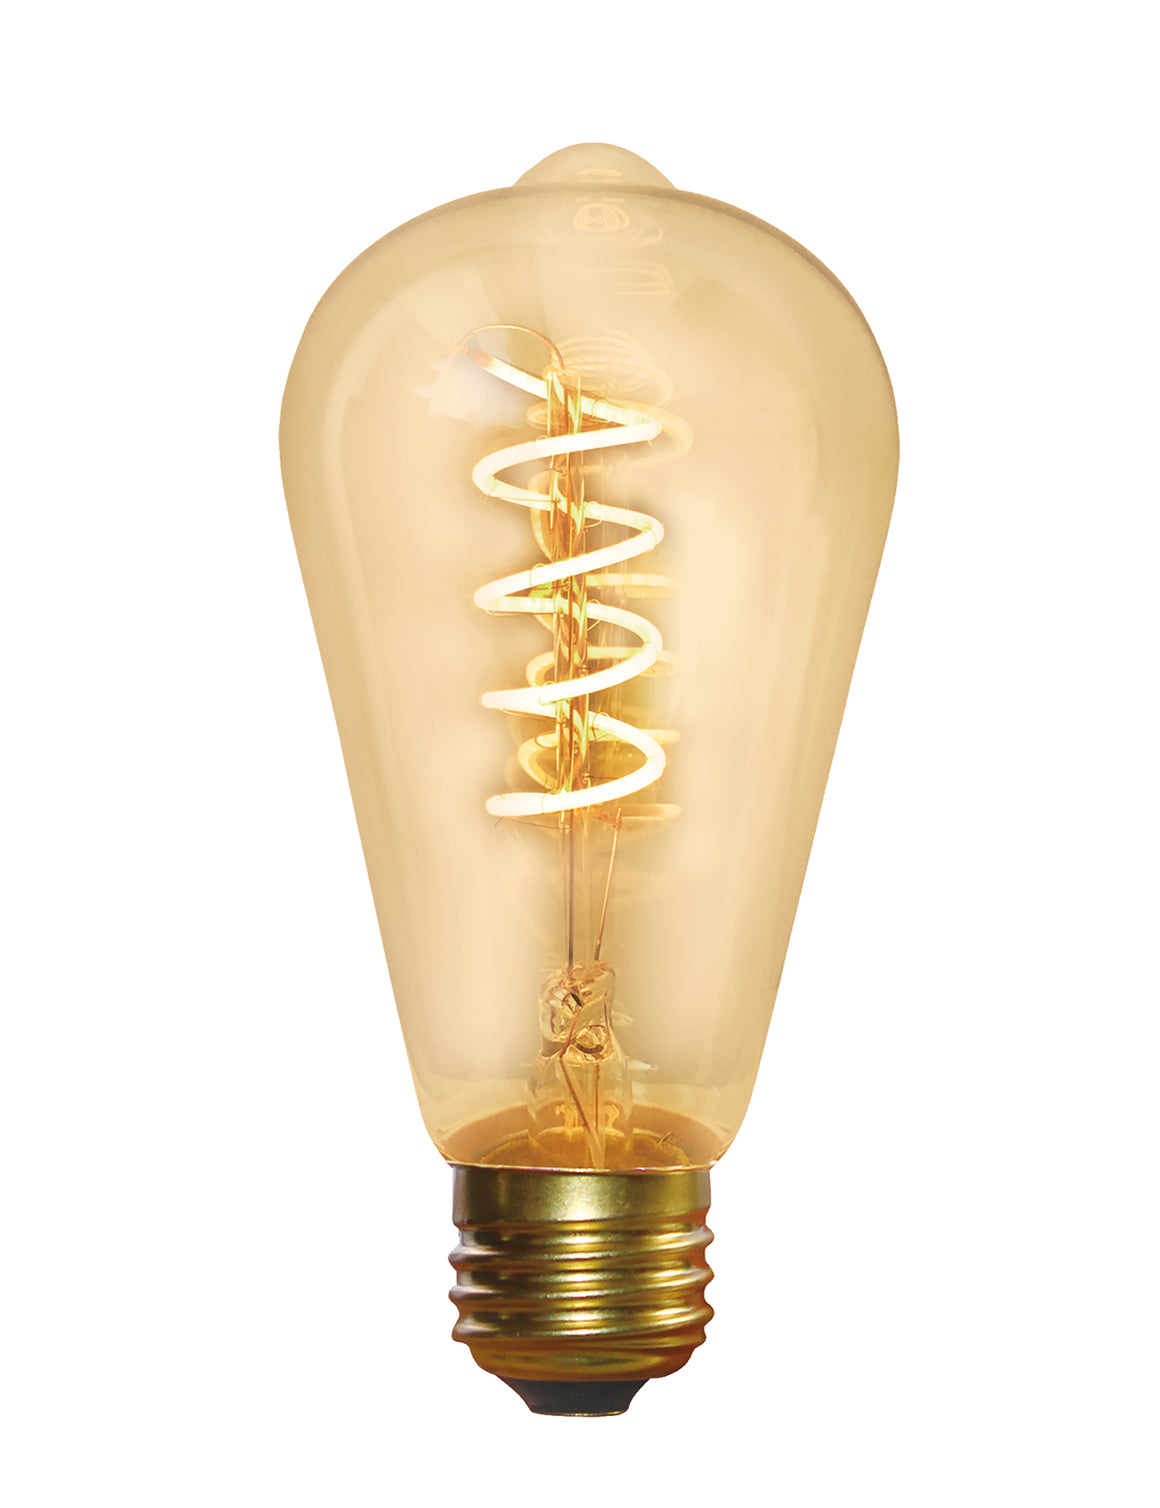 Vintage Spiral LED Edison Bulb Old Filament Lamp - 5W E27 Pear ST64 - Amber